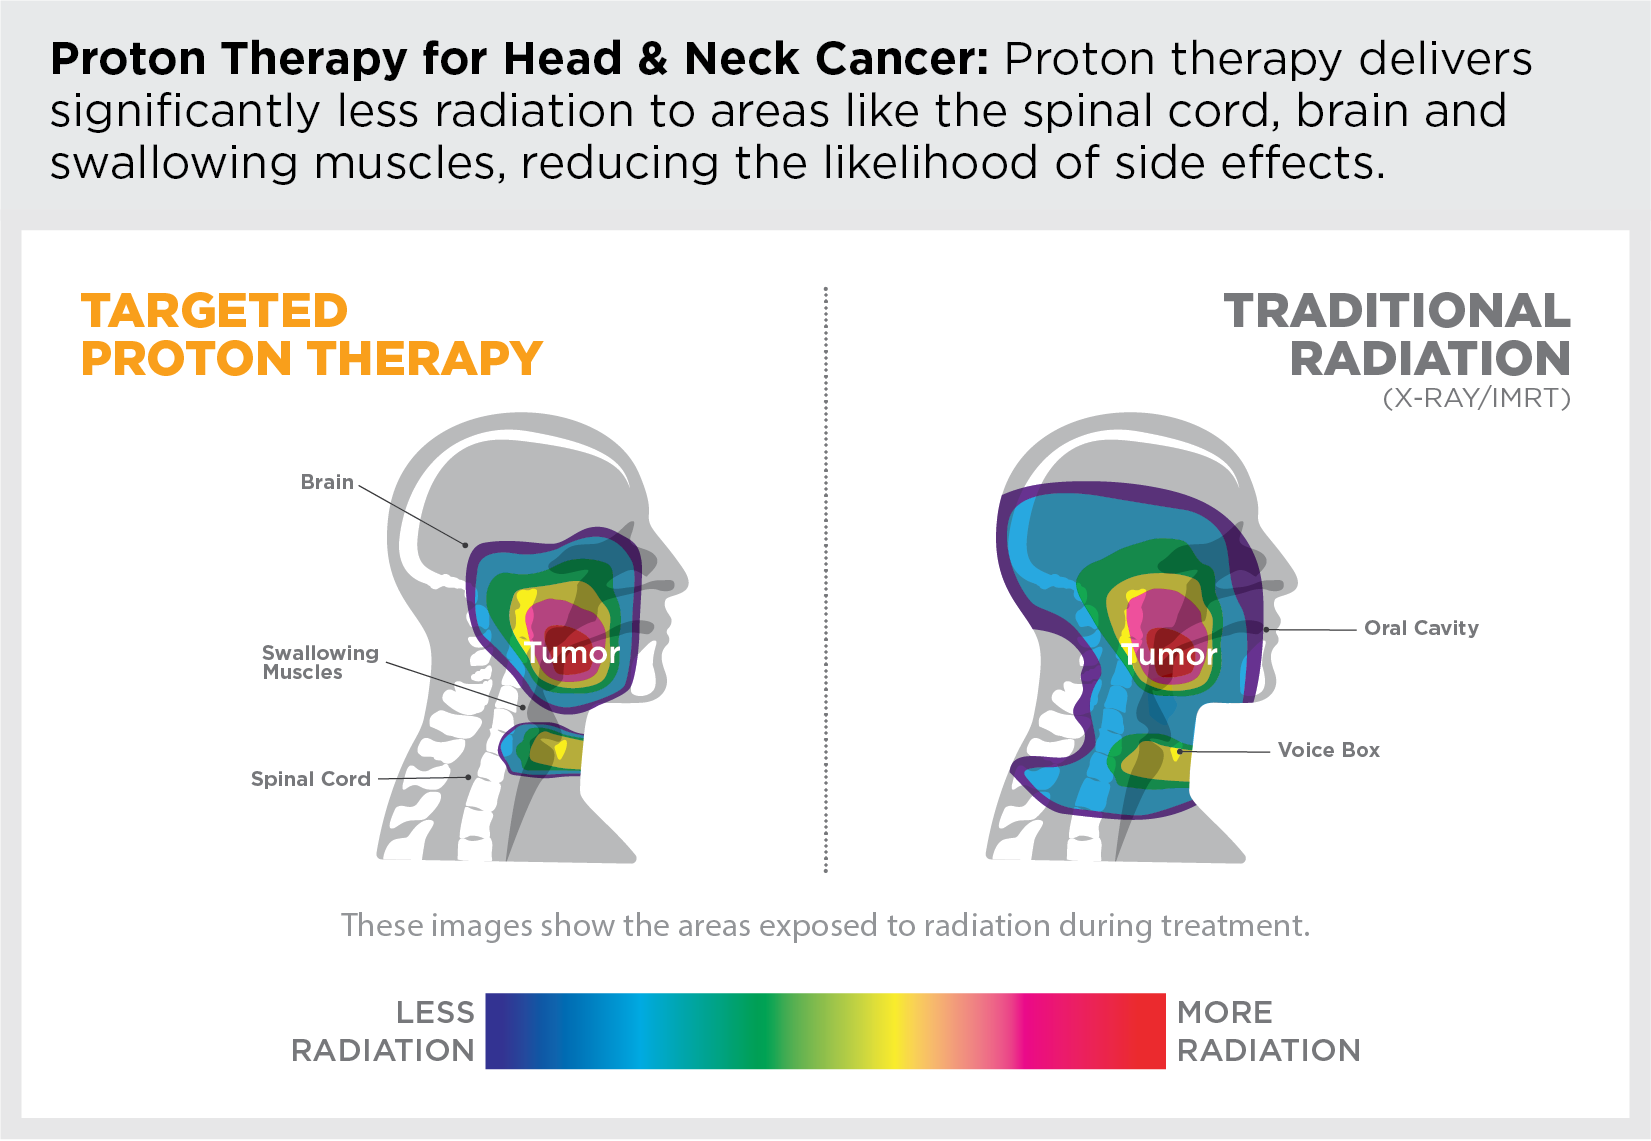 Proton therapy delivers significantly less radiation to areas like the spinal cord, brain and swallowing muscles, reducing the likelihood of side effects.